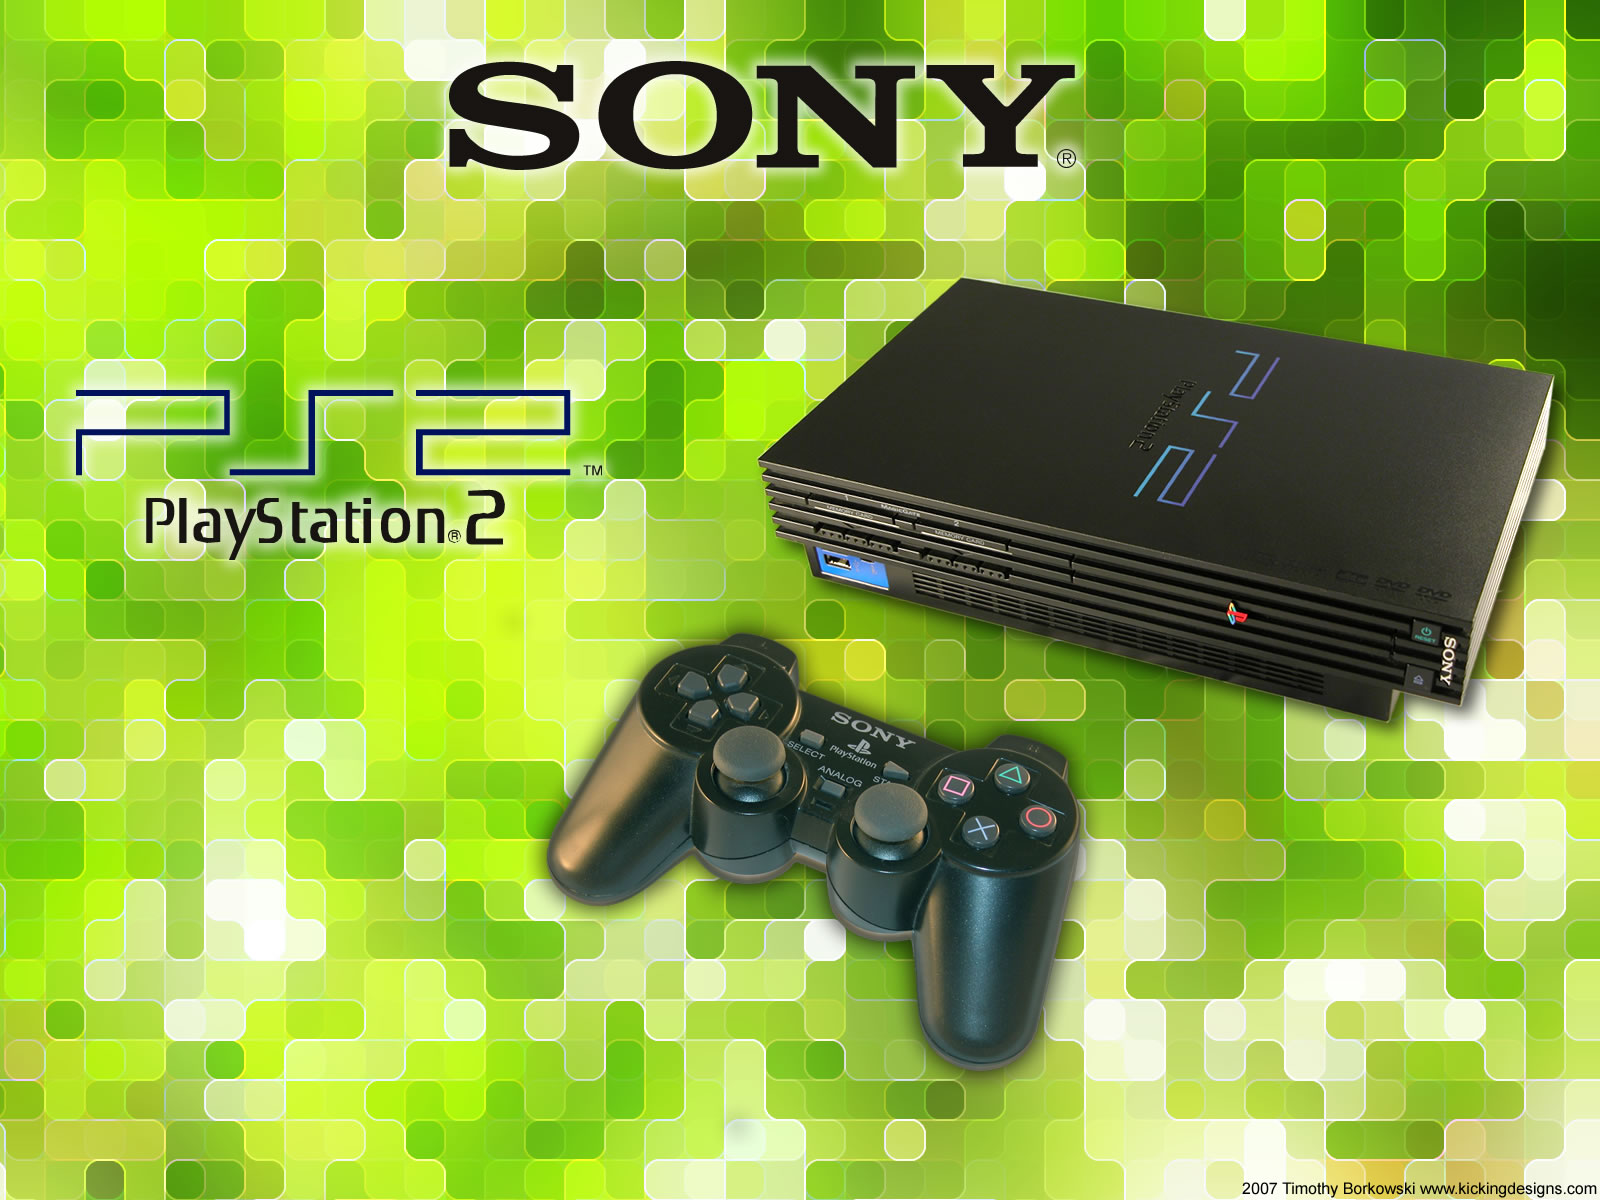 playstation 2 old games